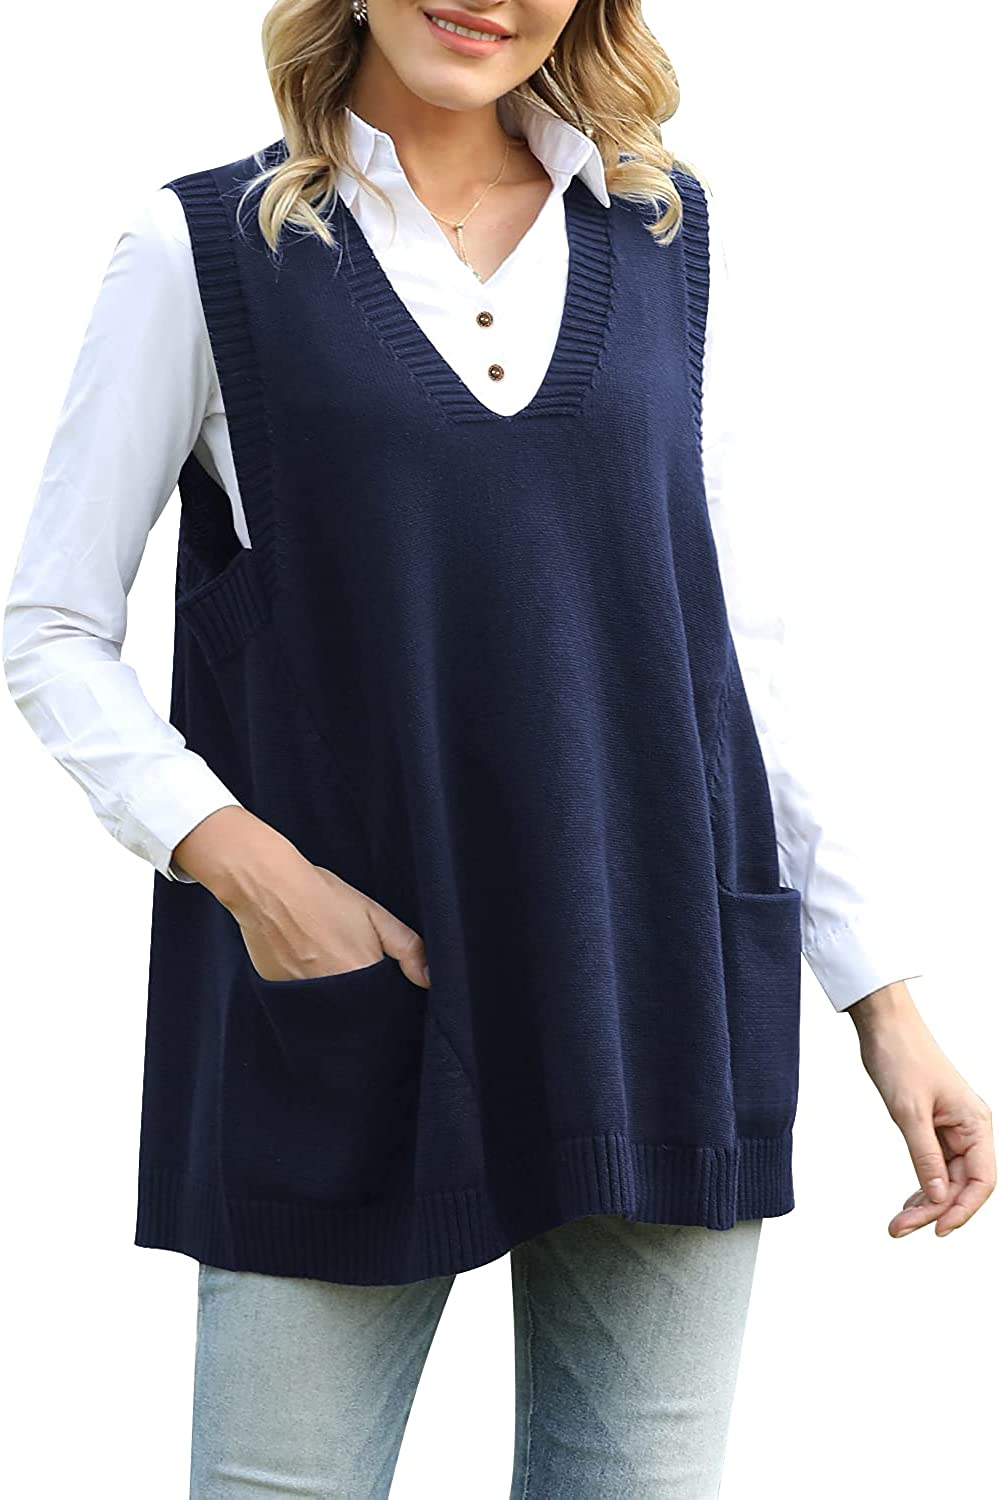 Beaurex Women Loose Swing Oversized Chunky Knitted Sweater Vests Pullovers Tops with Drop Pockets SW09